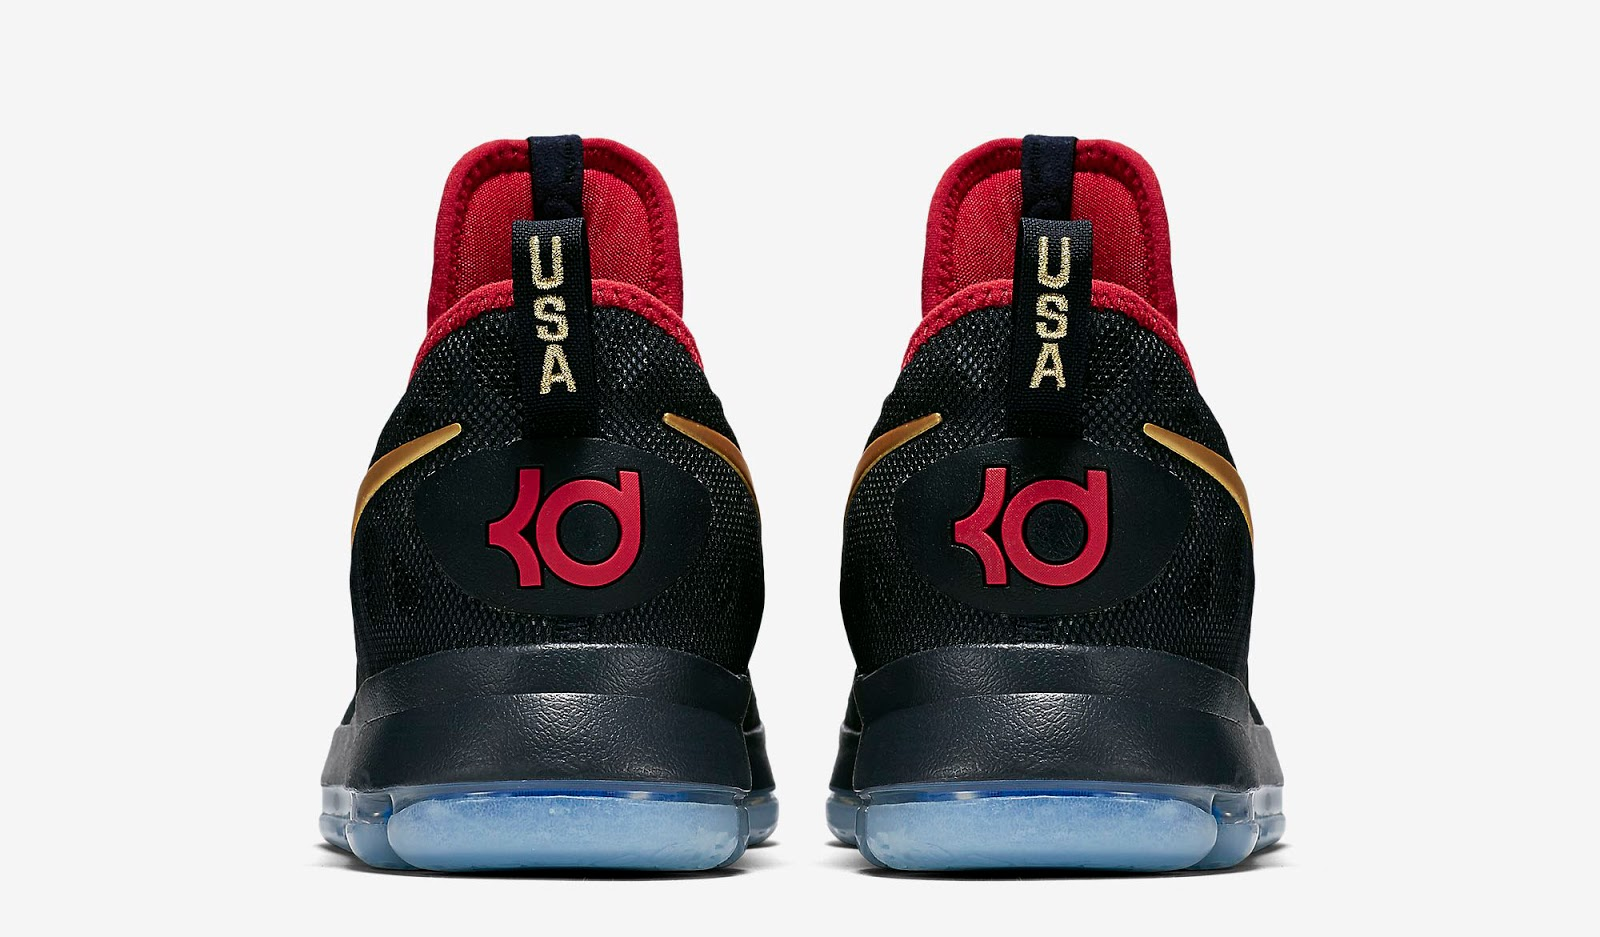 quality design bc1c5 29d88 ajordanxi Your  1 Source For Sneaker Release Dates  Nike Zoom KD 9 ...